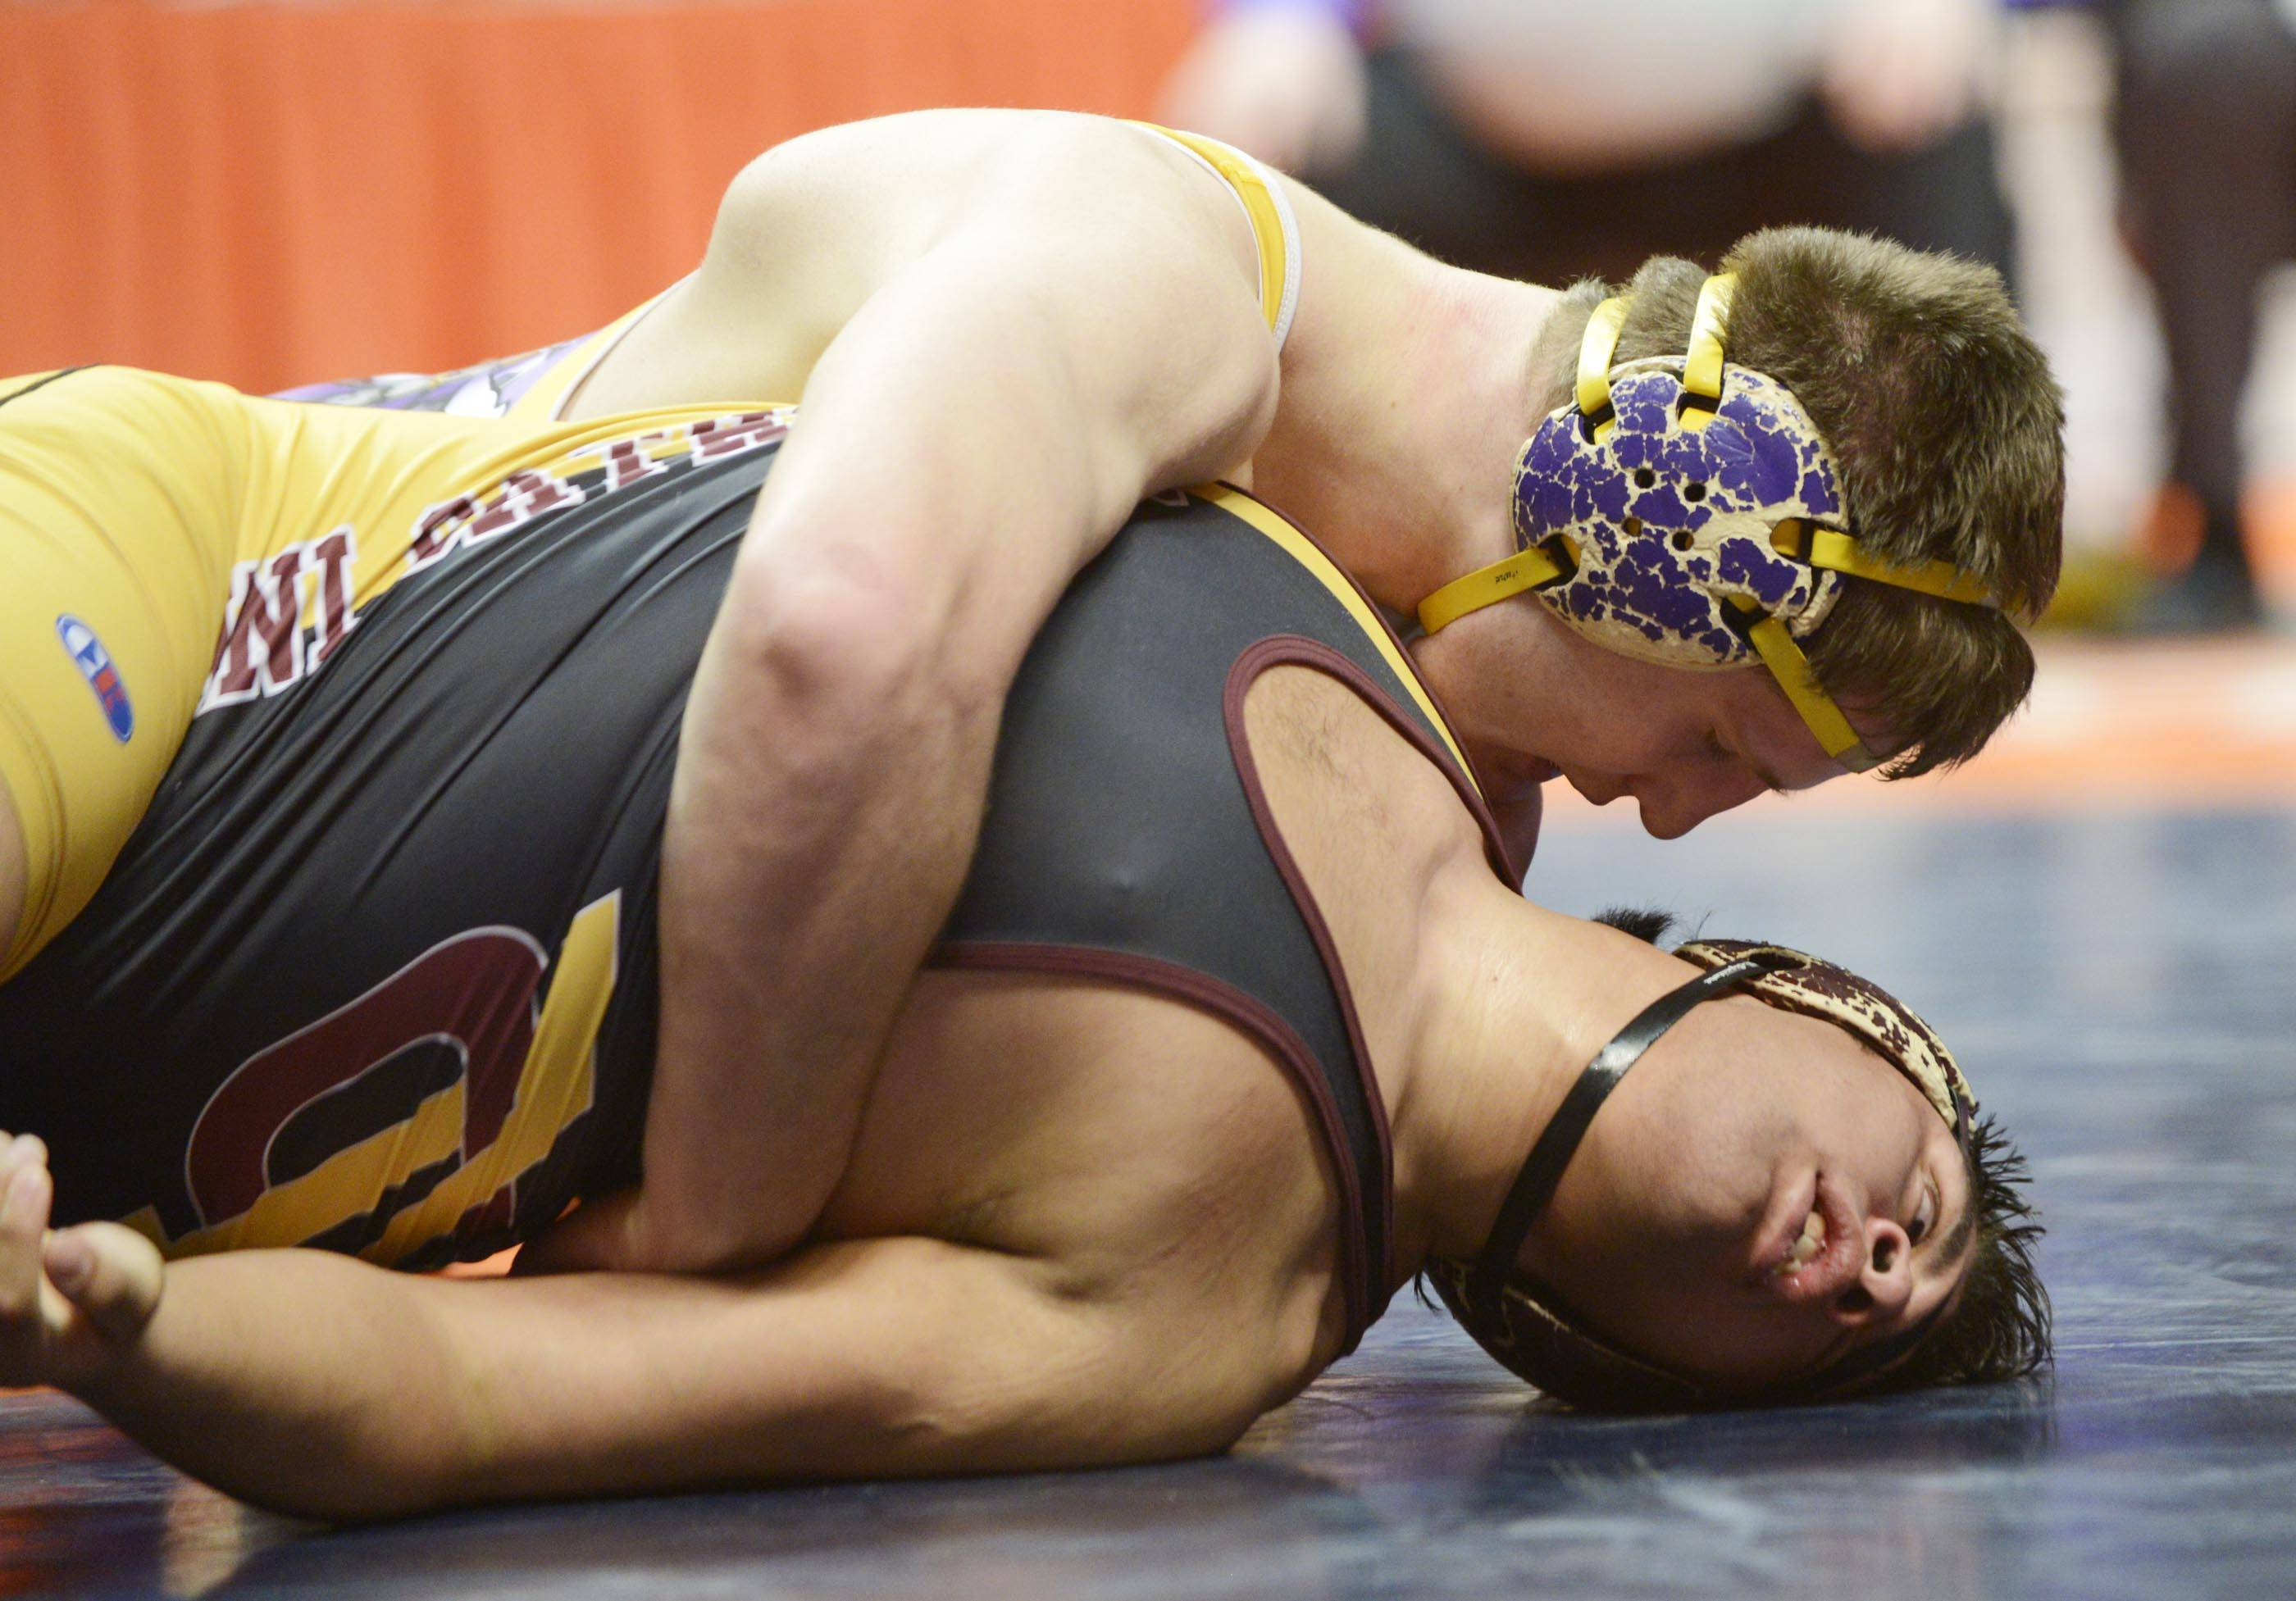 Nate Magiera of Wauconga High School holds down Edgar Ruano Montini in the Class 2A 220-pound championship match in Champaign on Saturday. Magiera won the title with a 17-4 decision.